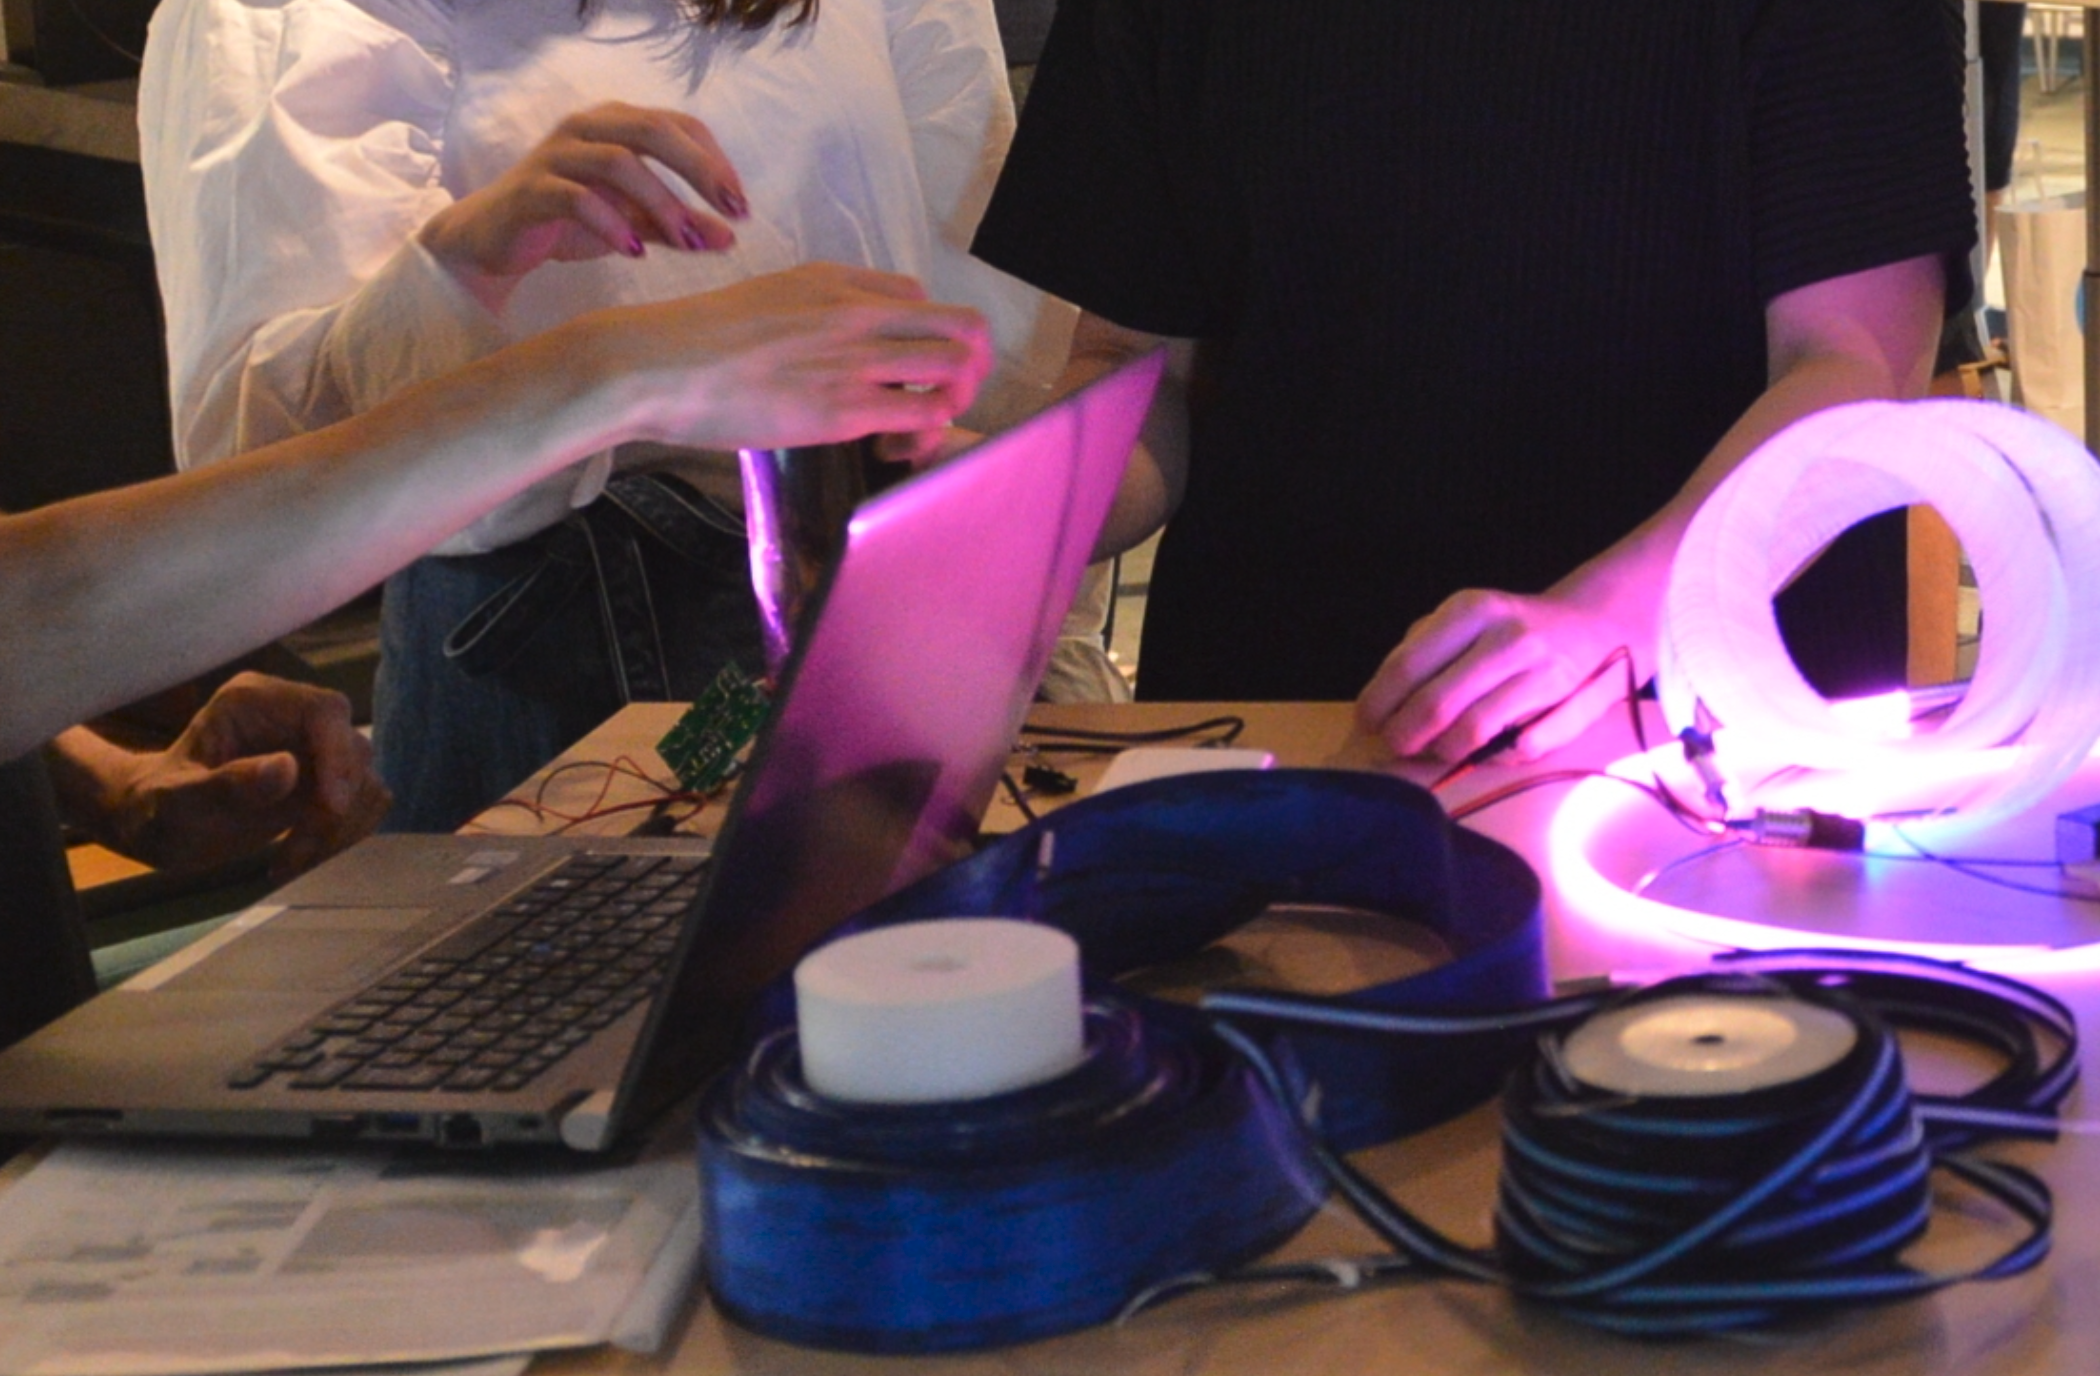 People working together with computer and materials